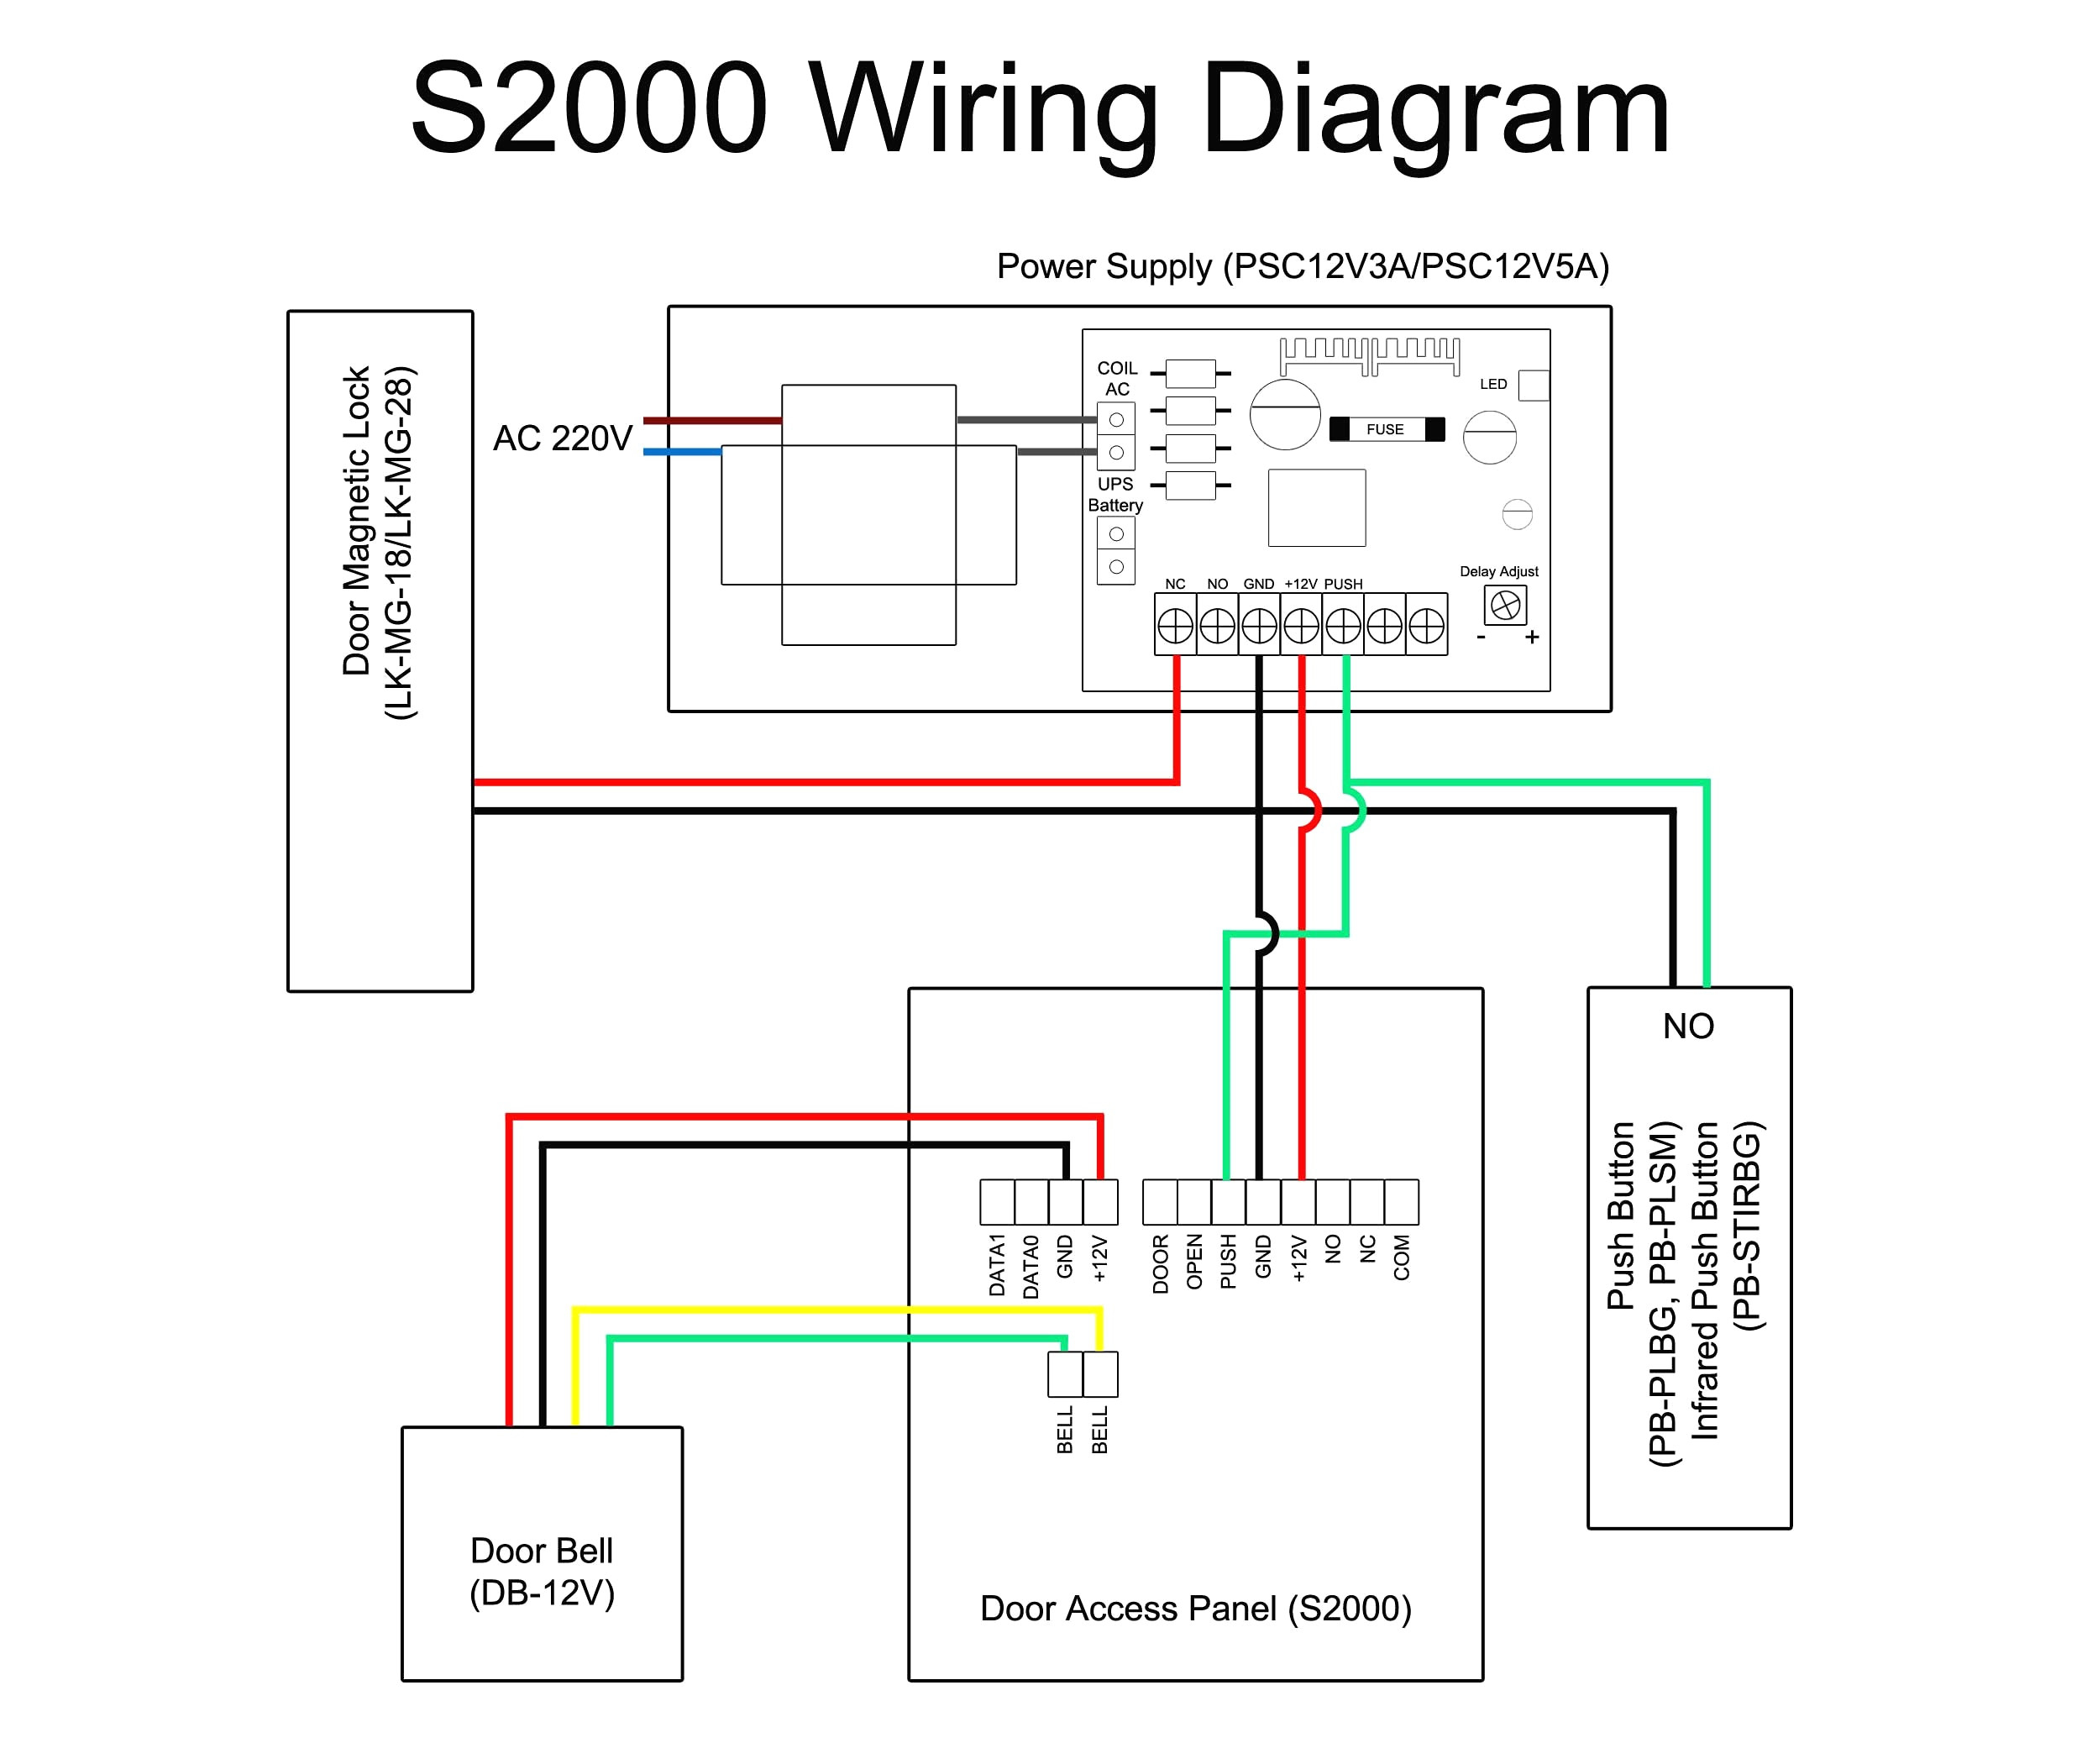 Door Access Control System Wiring Diagram Pdf Sample Wiring Diagram For  Cigarette Lighter System Wiring Diagram For Door